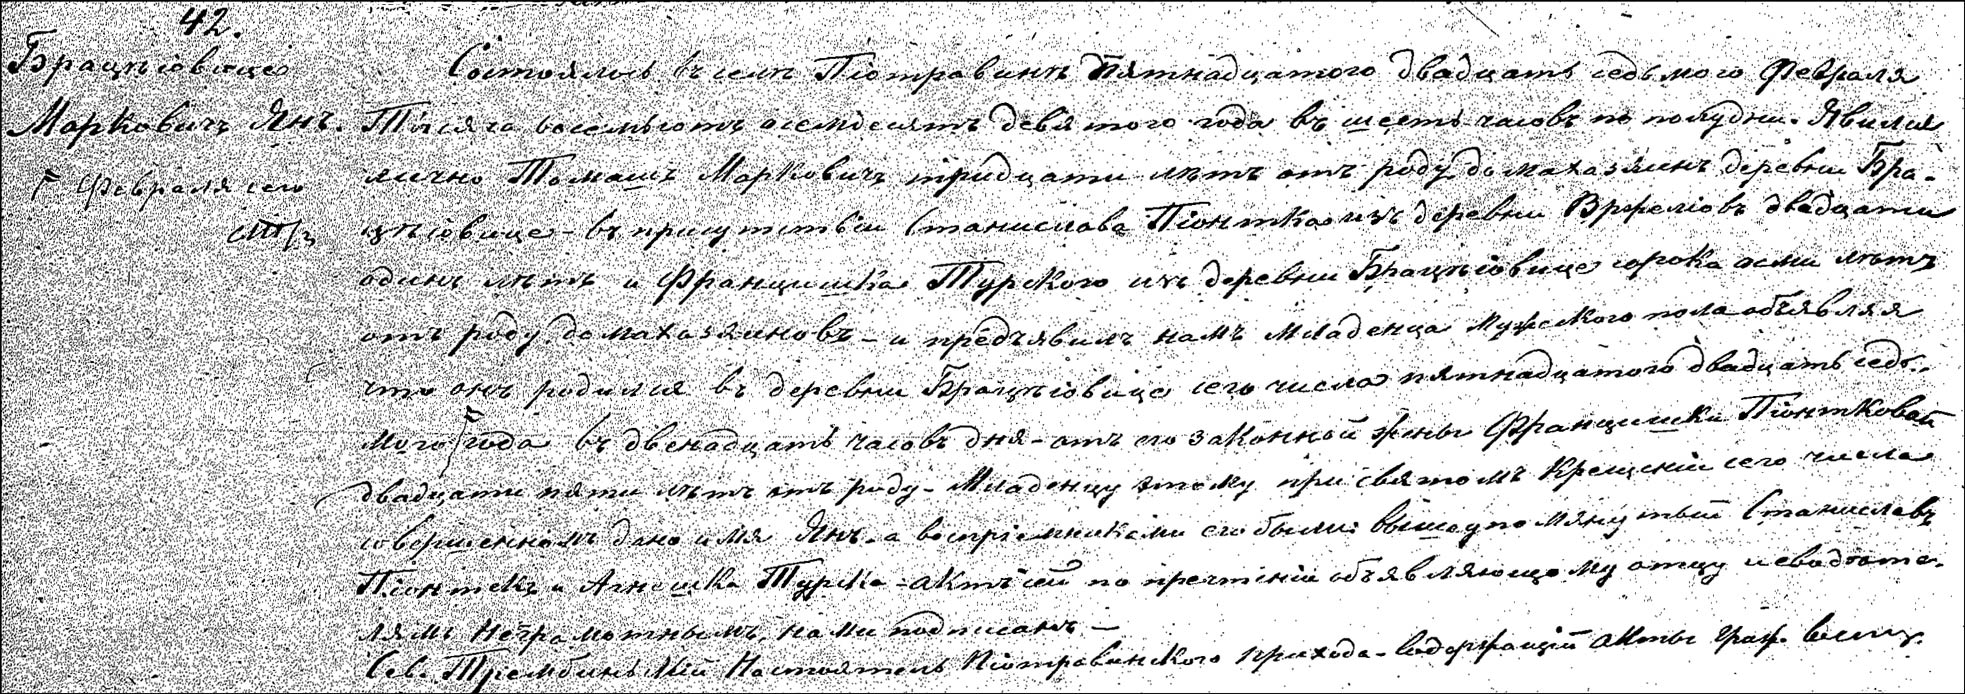 The Birth and Baptismal Record for Jan Markiewicz